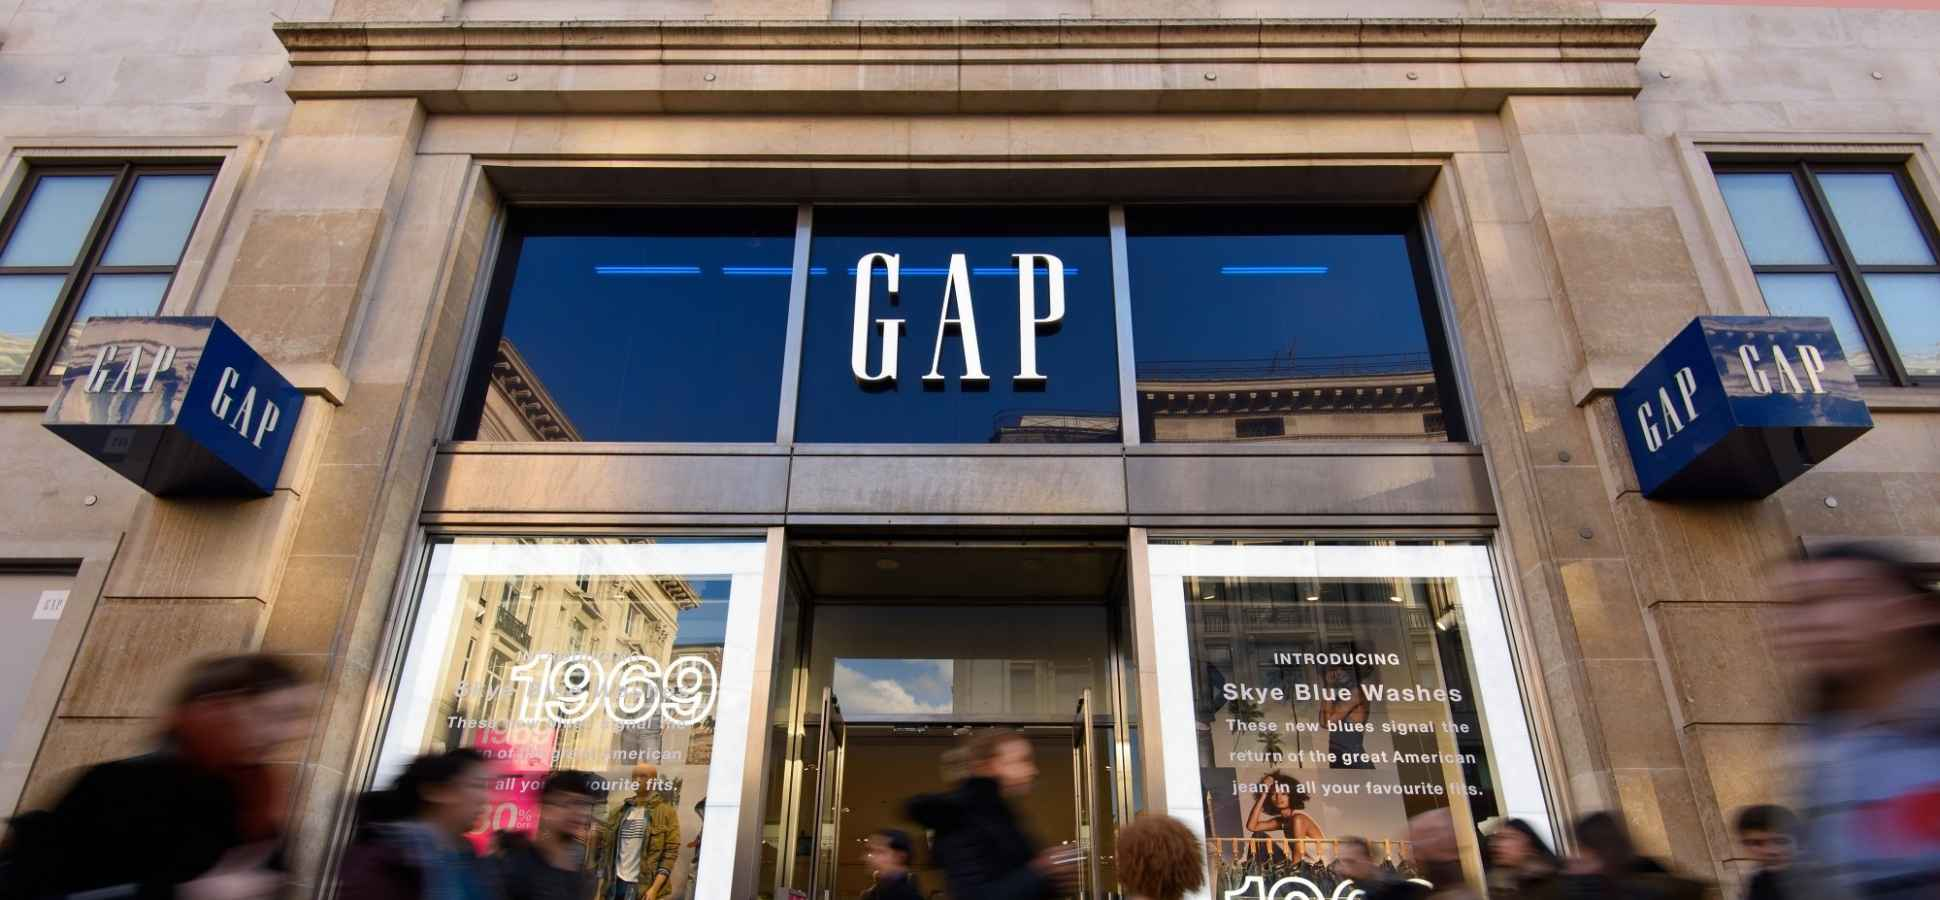 The CEO of Gap Took a 5-Year-Old's Complaint From Idea to Major Change in Just 2 Weeks